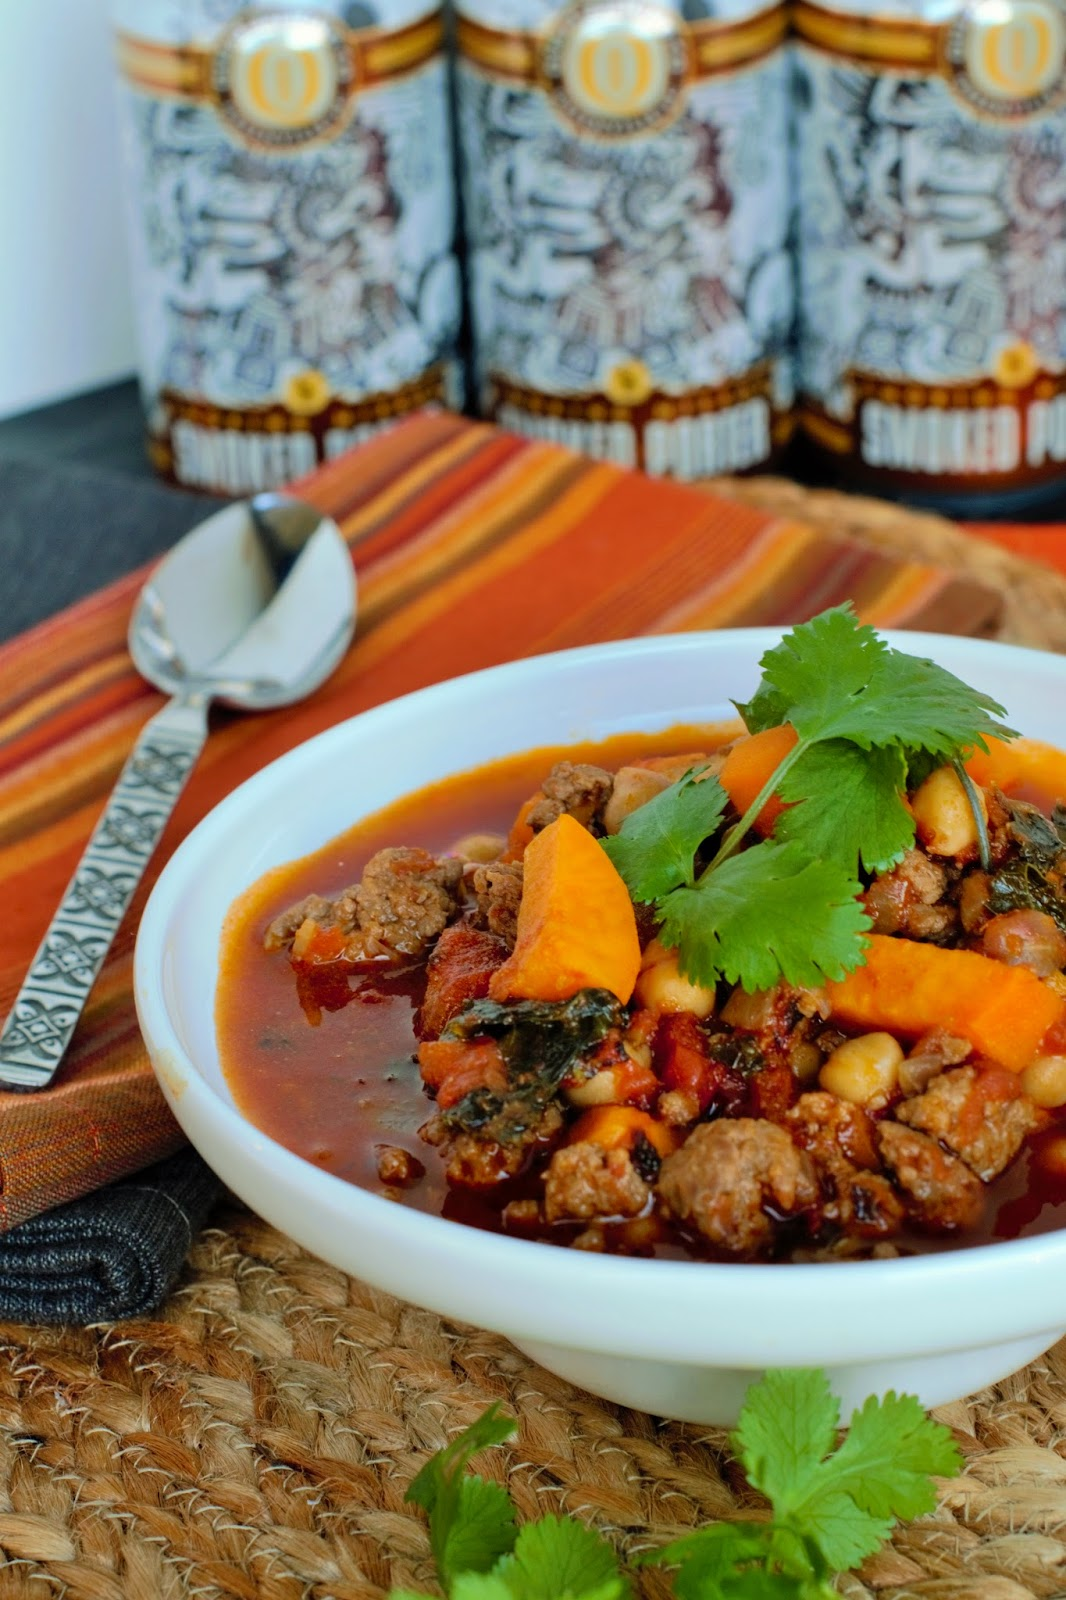 ... biscotti: Moroccan Lamb Chili with Kale, Chickpeas and Sweet Potato